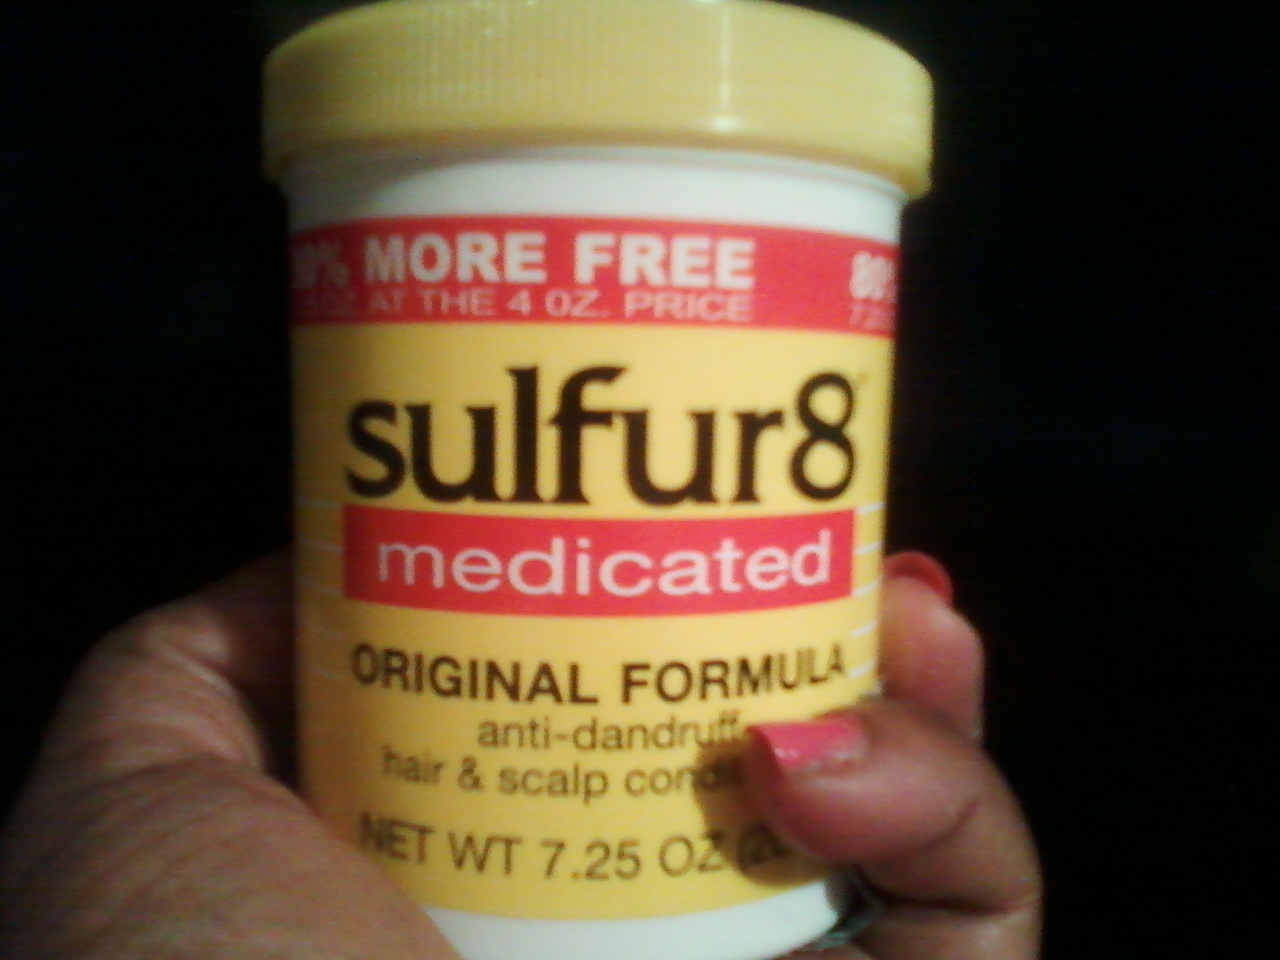 Sulfur 8 Hair Products Do They Make Your Grow